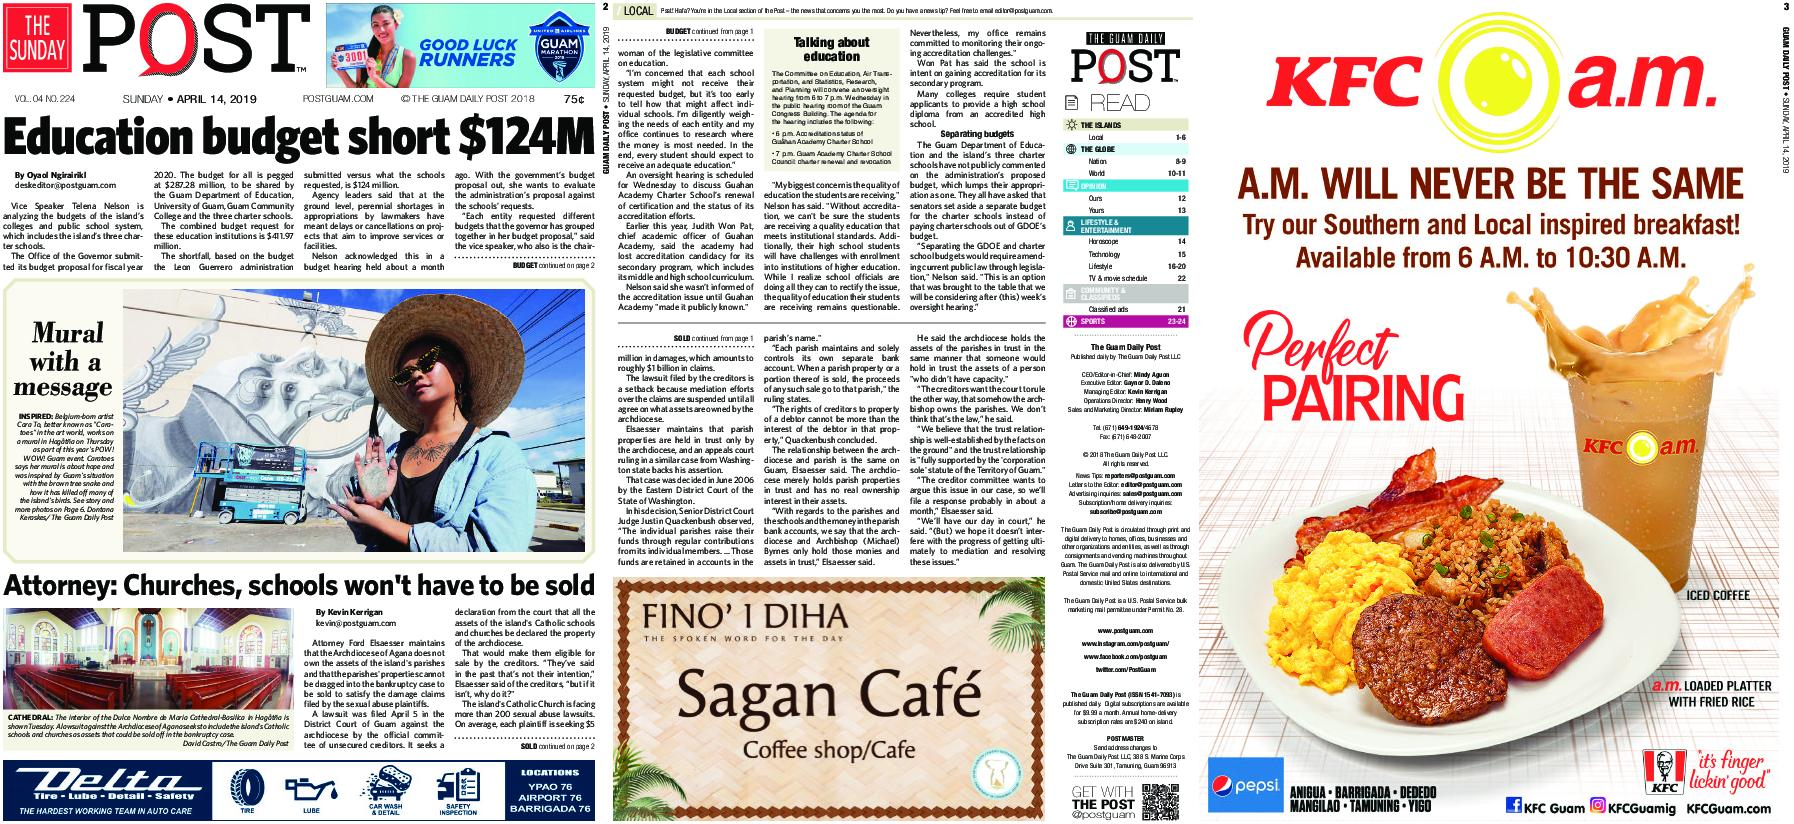 The Guam Daily Post – April 14, 2019